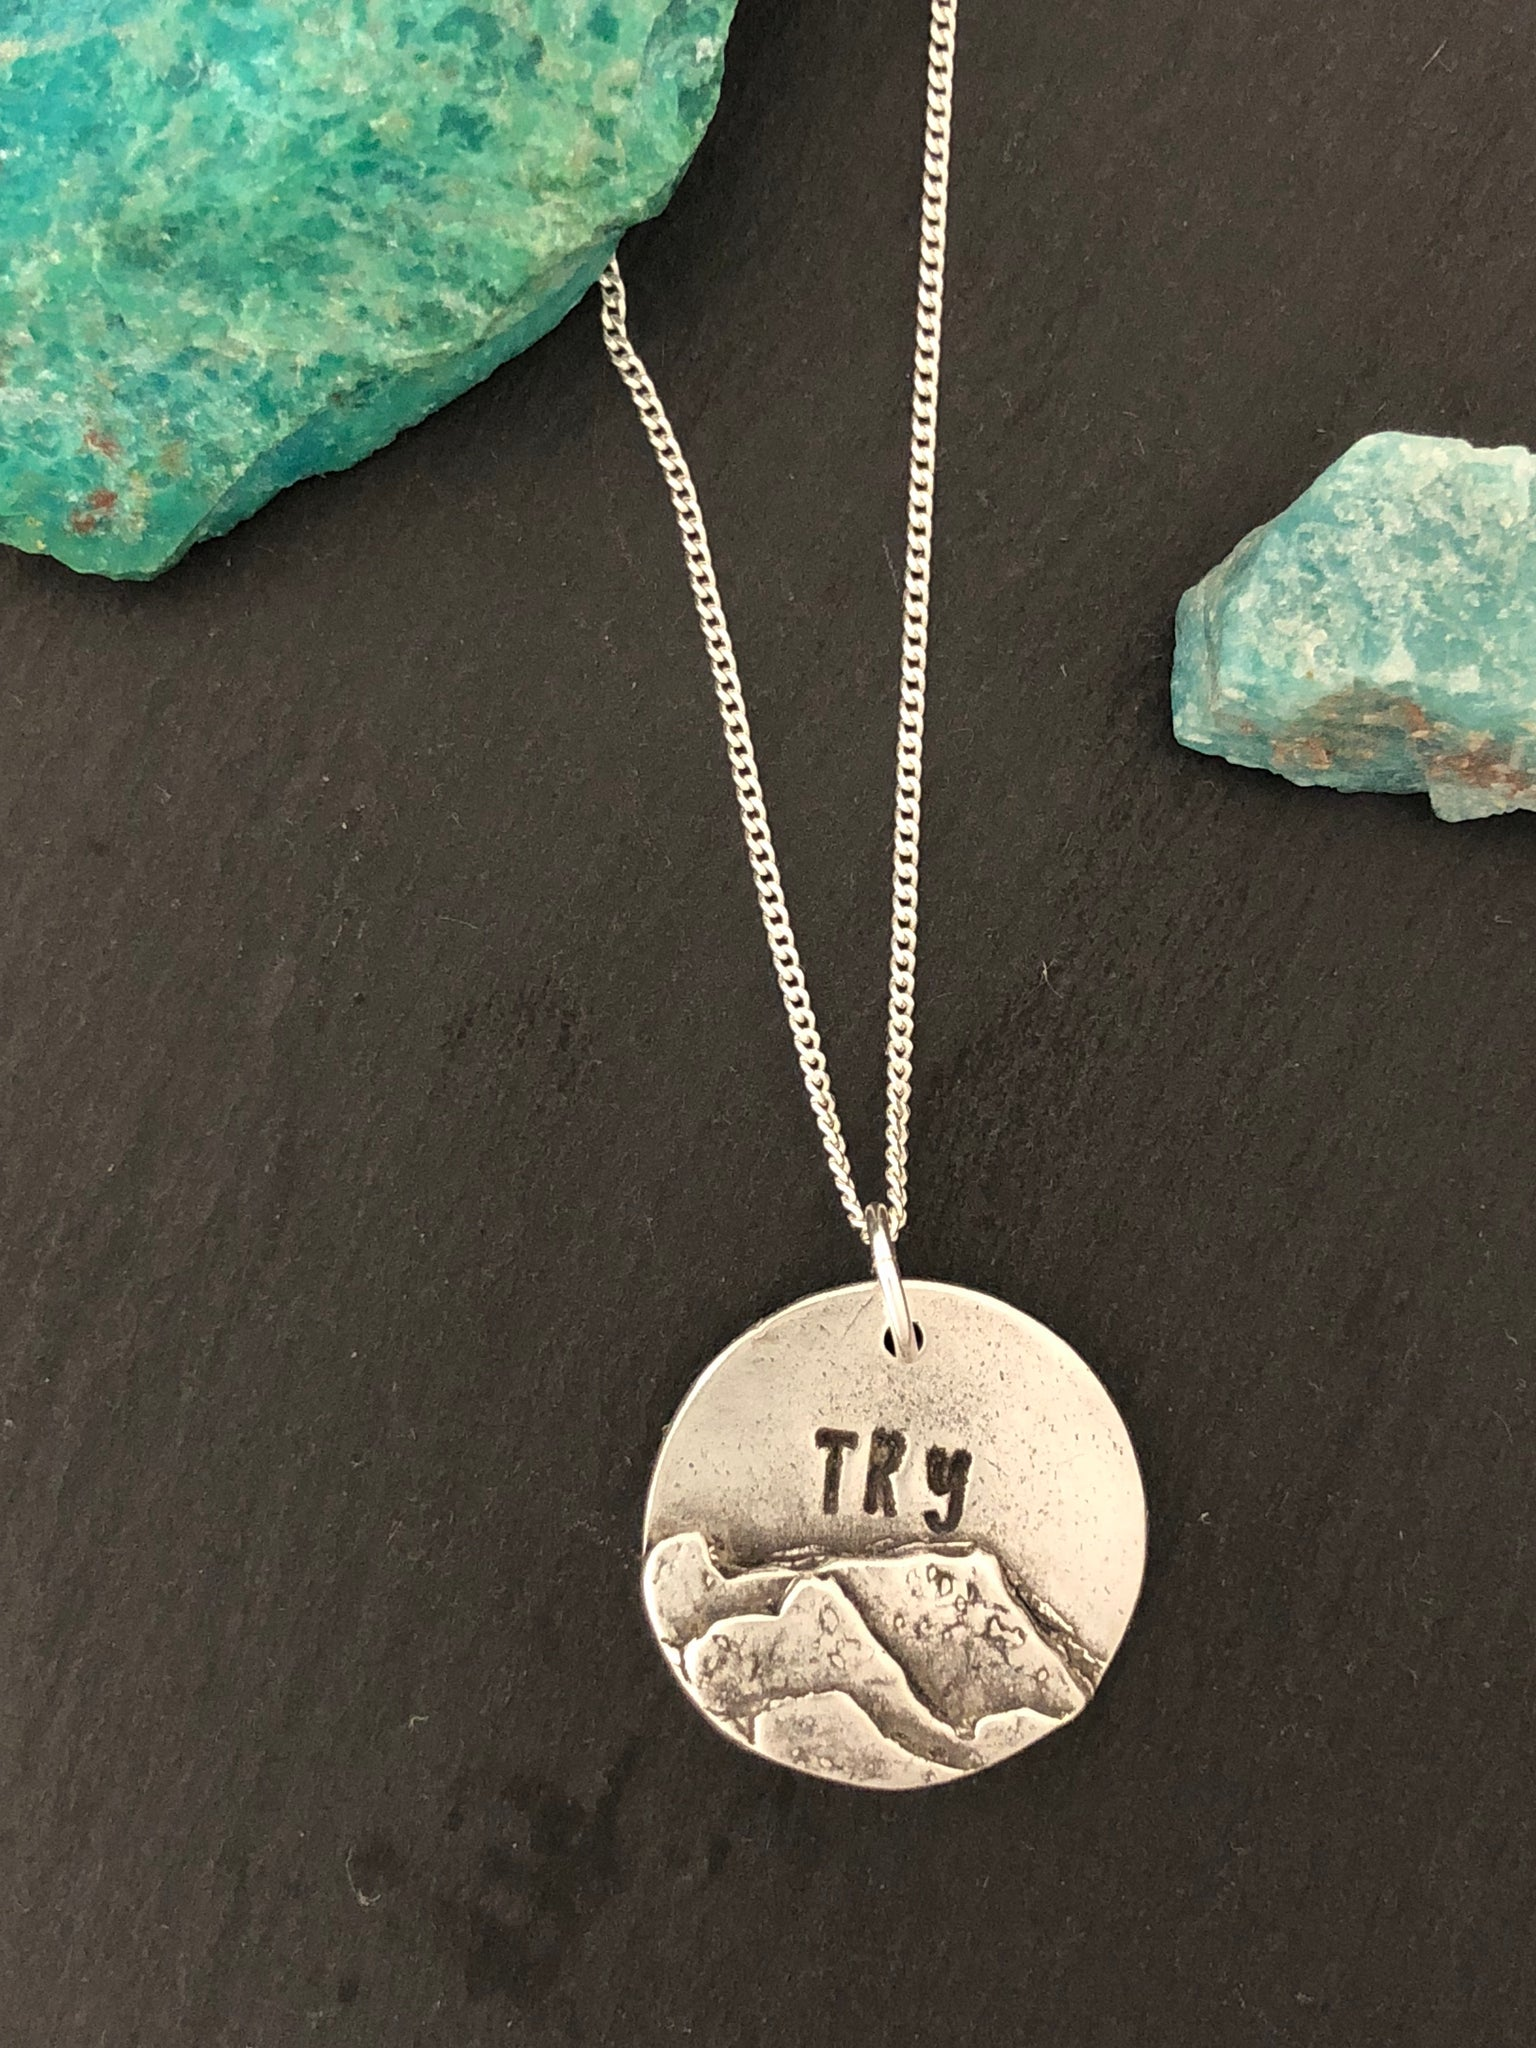 """Try"" Round Silver Pendant and Chain - No Barriers Jewelry -"